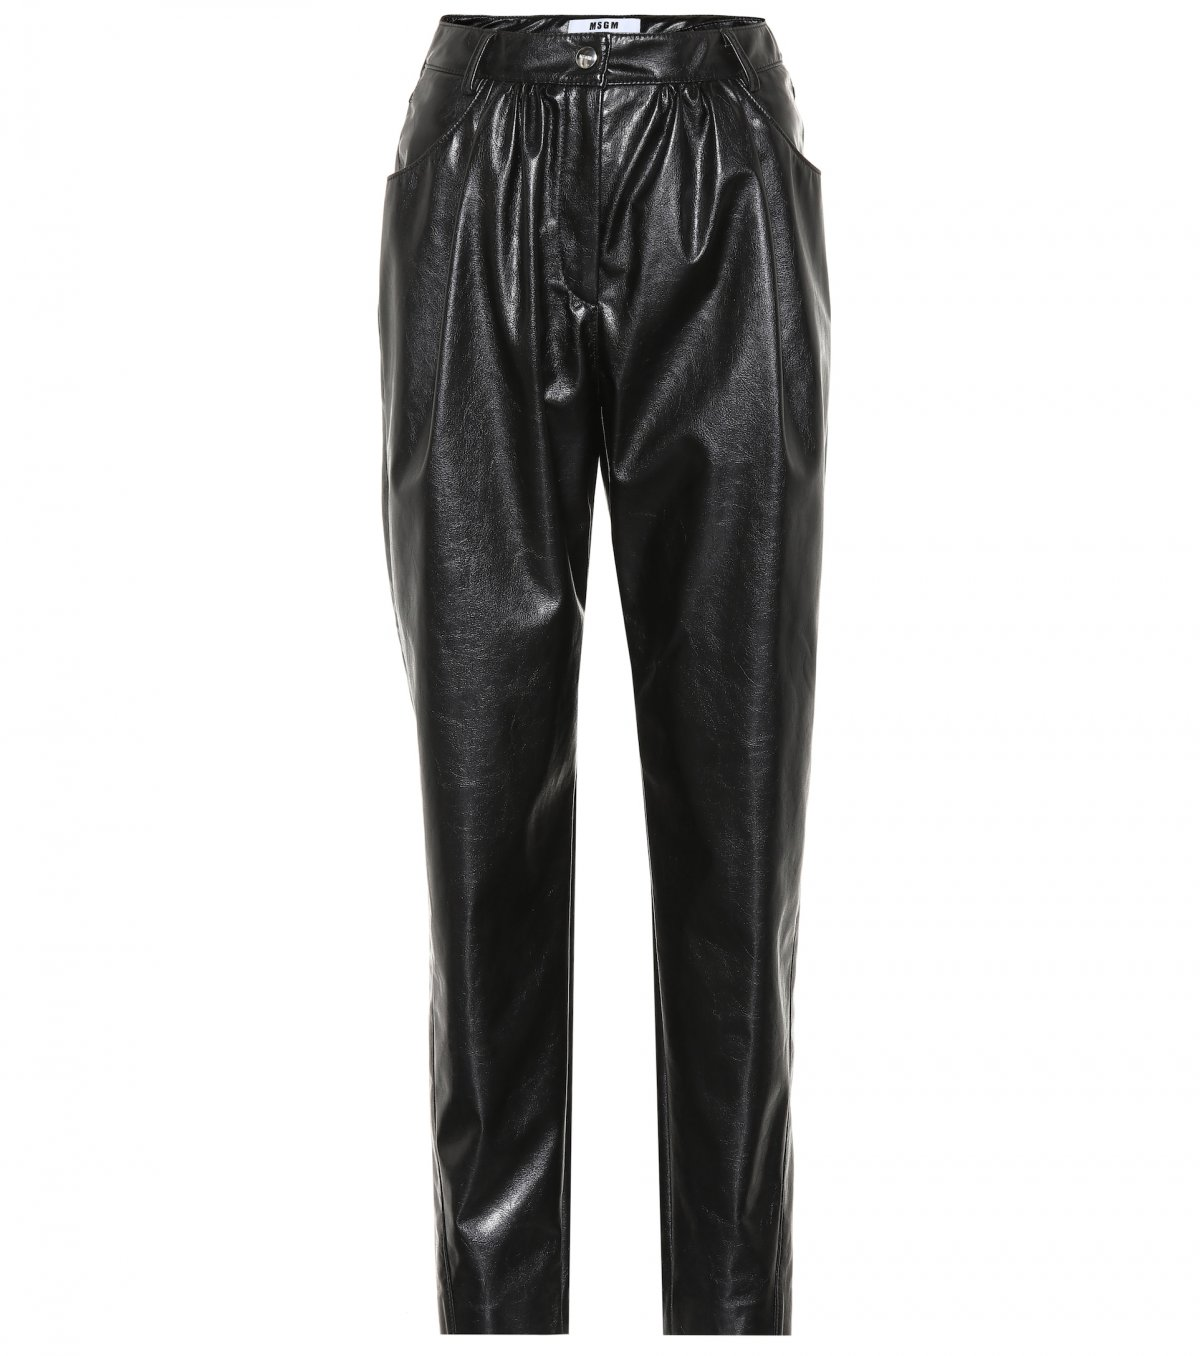 High-rise faux leather pants by MSGM, available on mytheresa.com for EUR245 Kylie Jenner Pants Exact Product